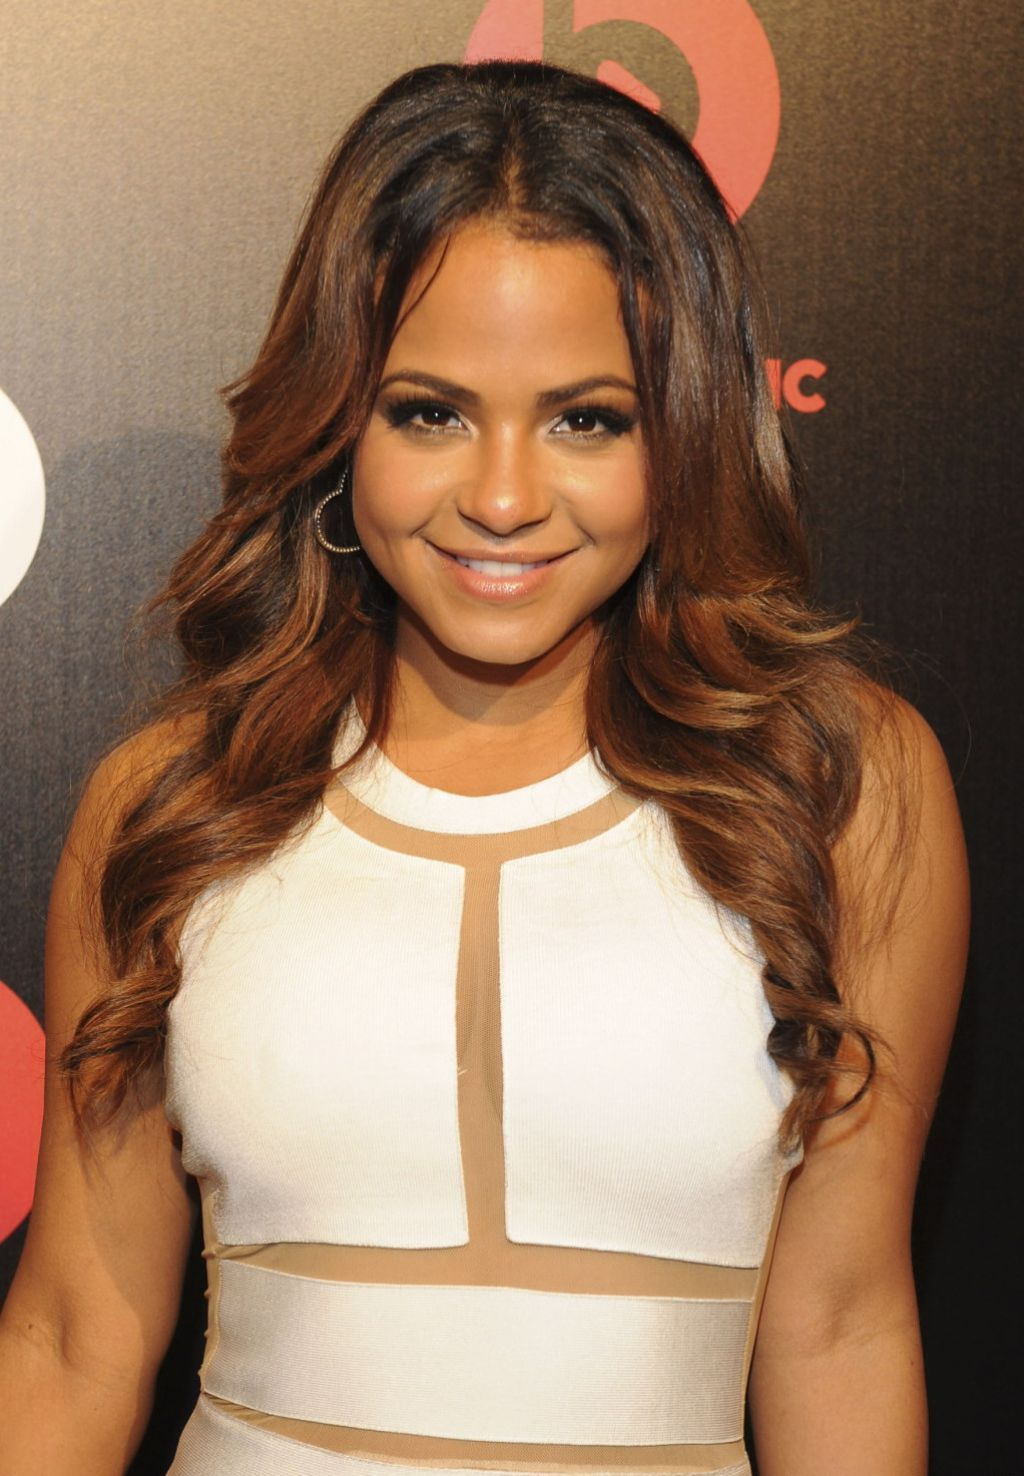 christina milian believer скачать